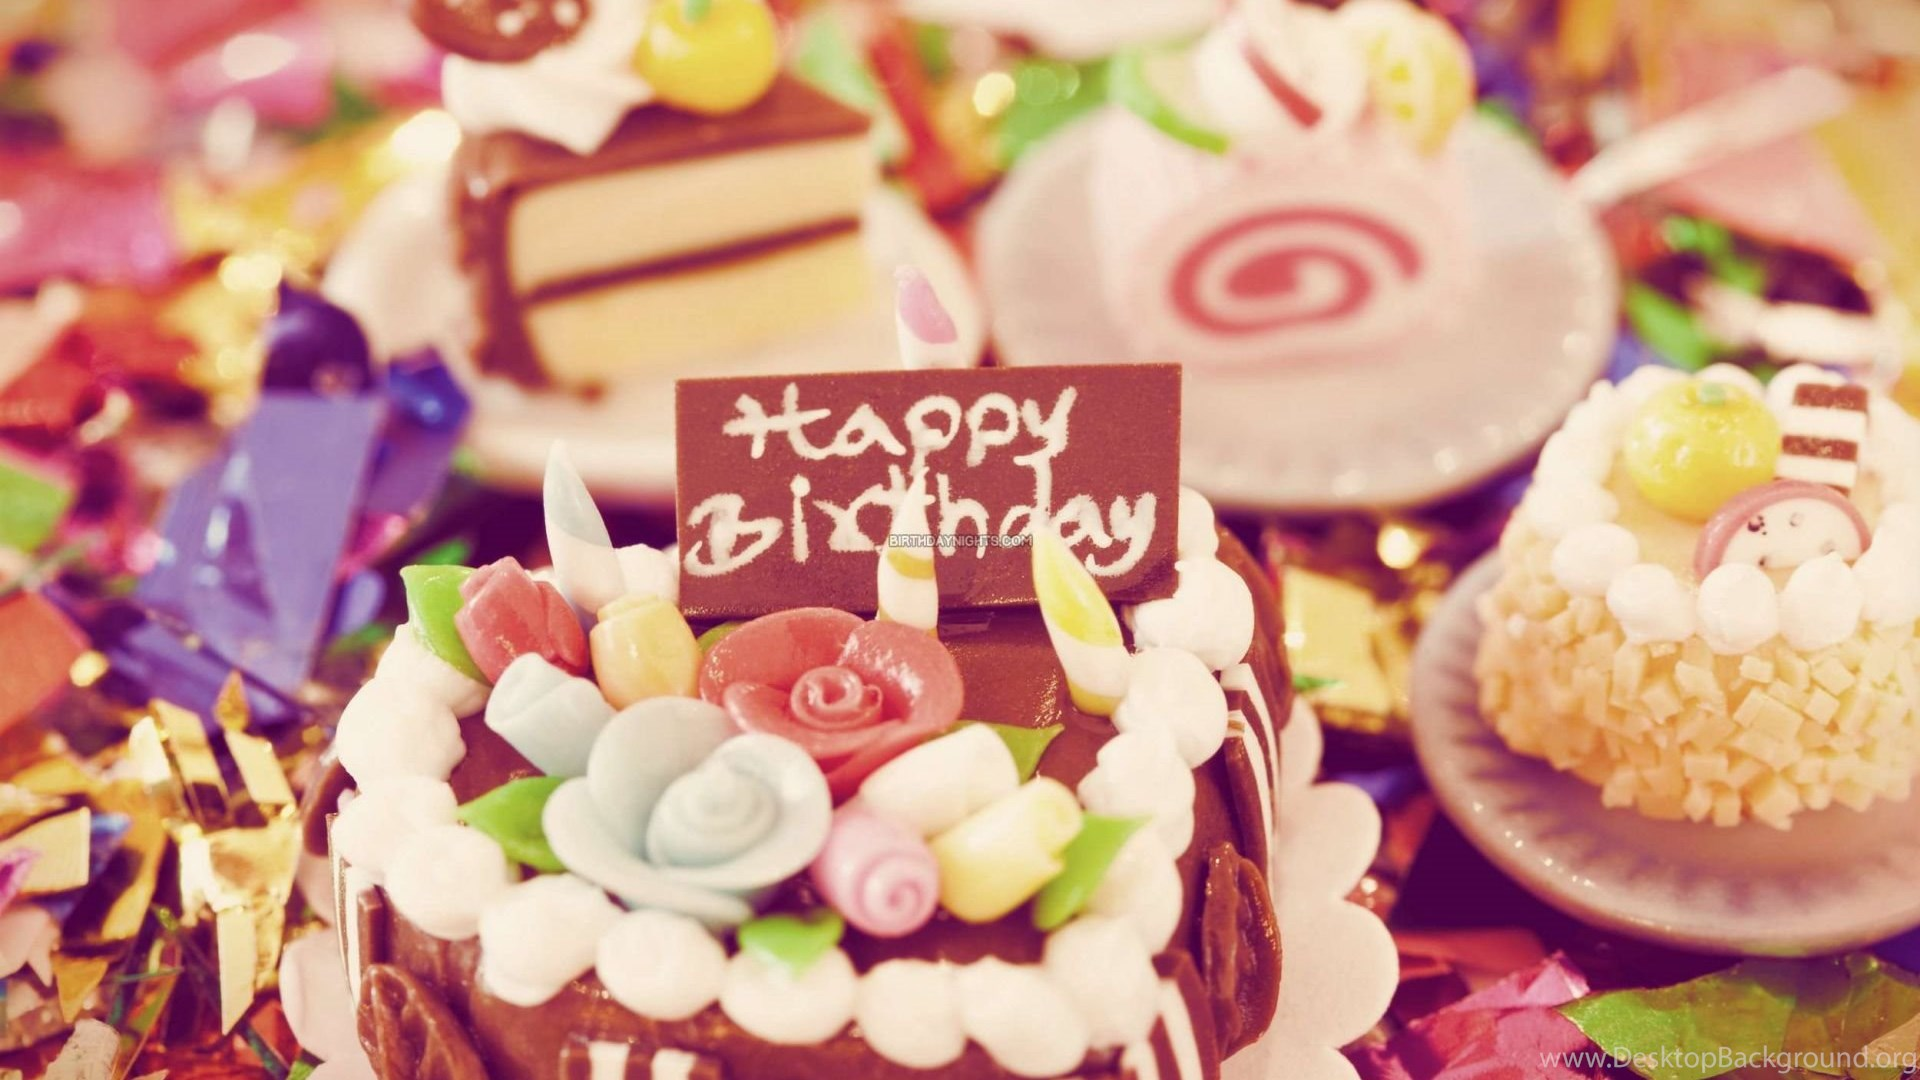 Birthday Cake Images Free Download For Mobile Choco Cake Happy